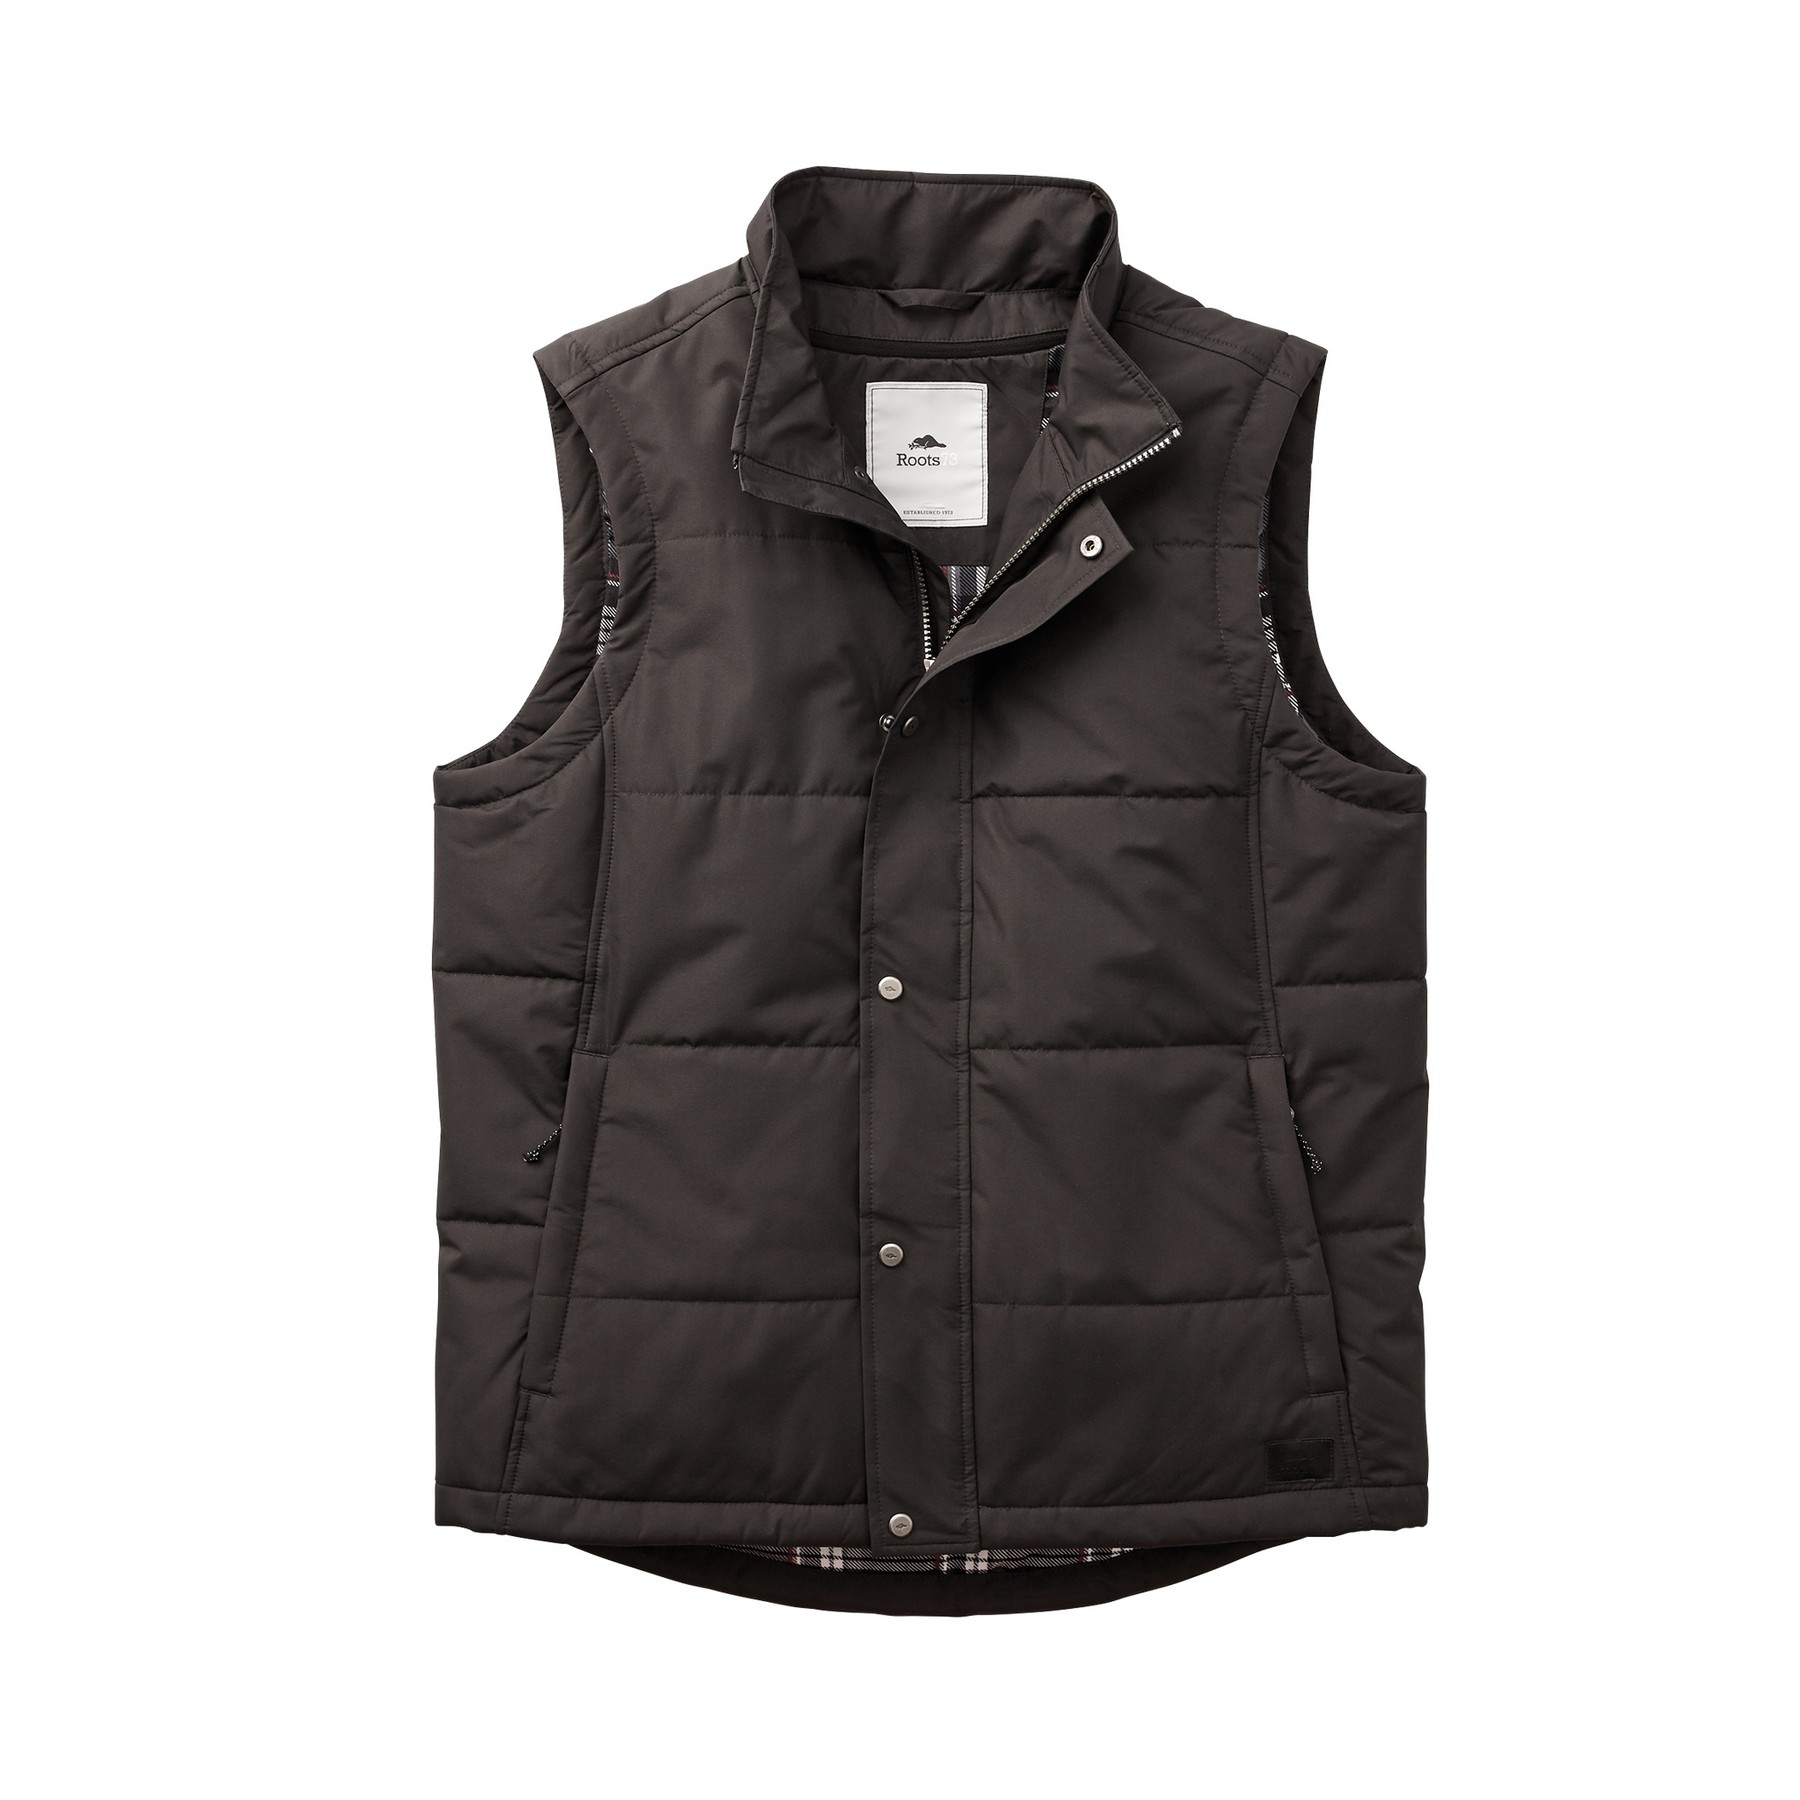 Traillake Insulated Men's Vest, #19410 - Embroidered